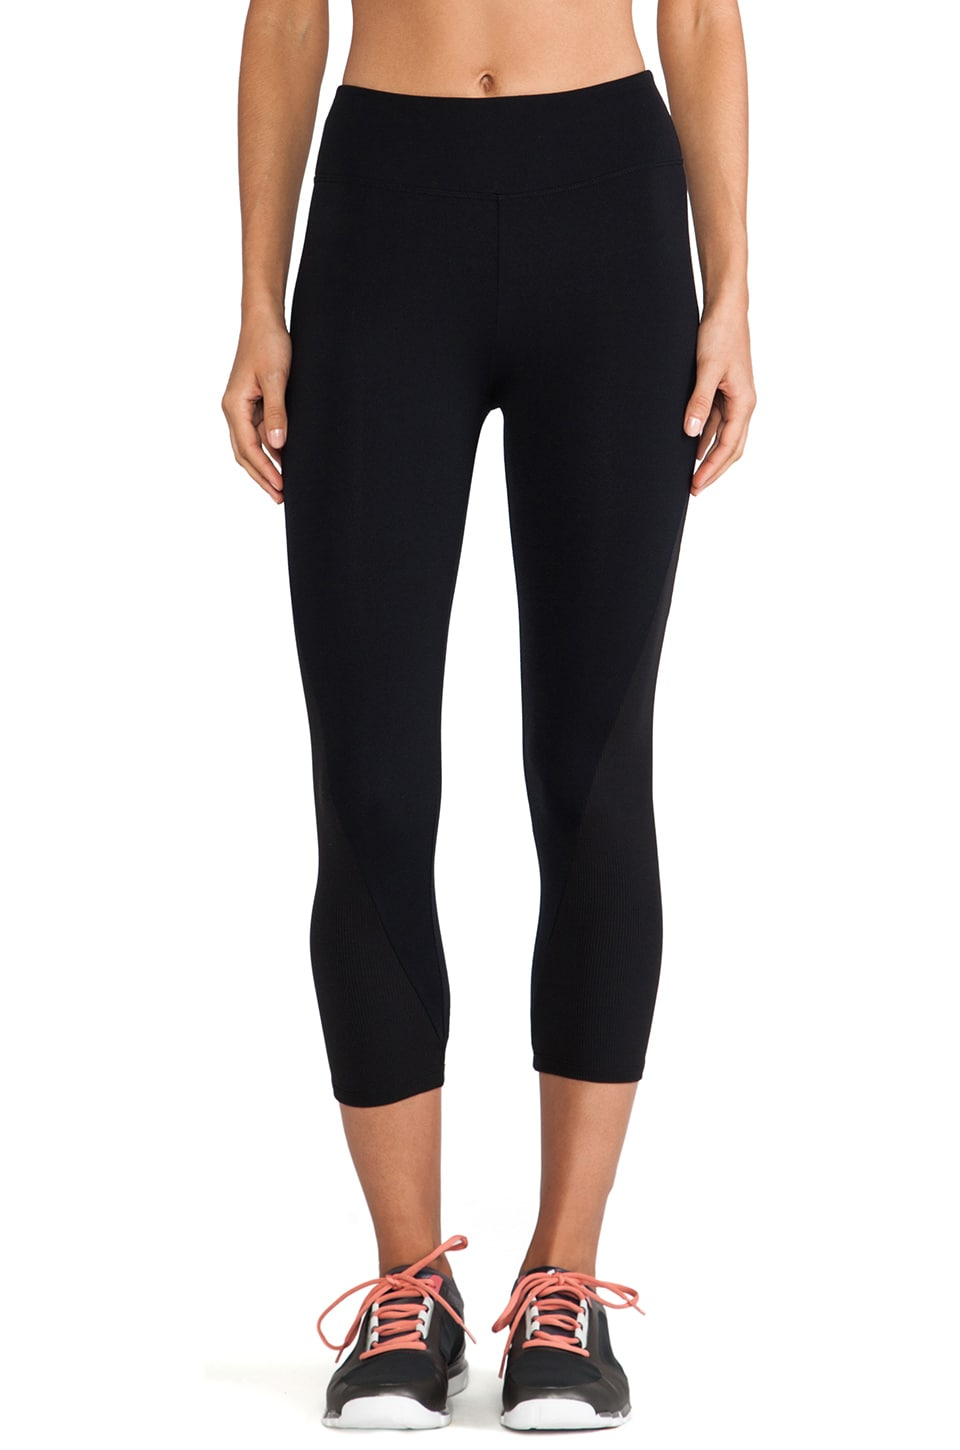 SOLOW Crop Legging in Black & Black